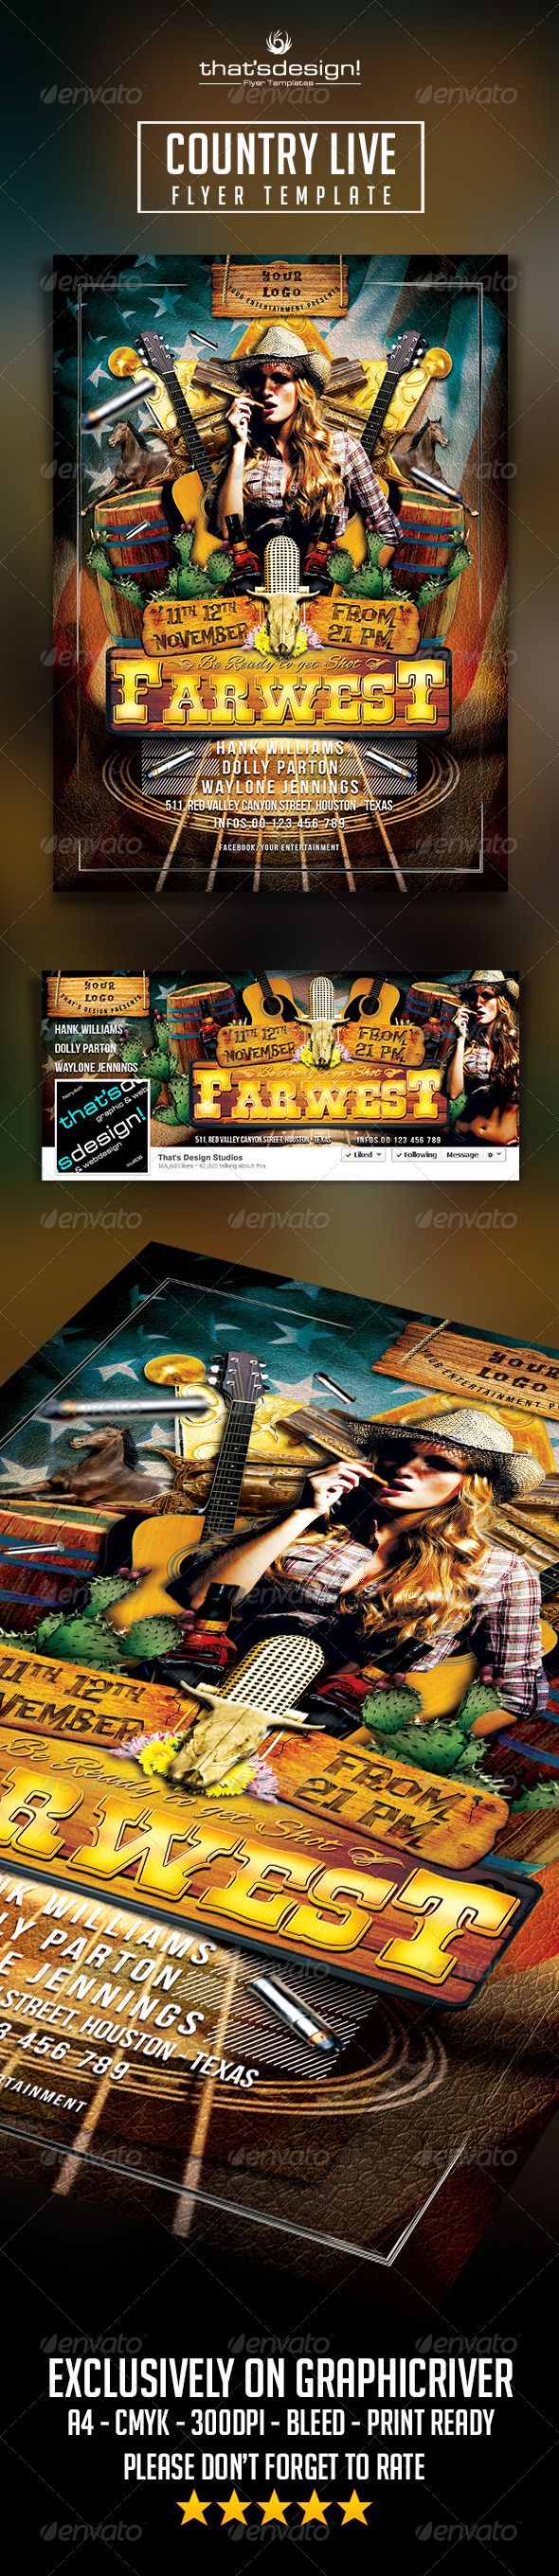 Country Live Flyer Template - Print Templates